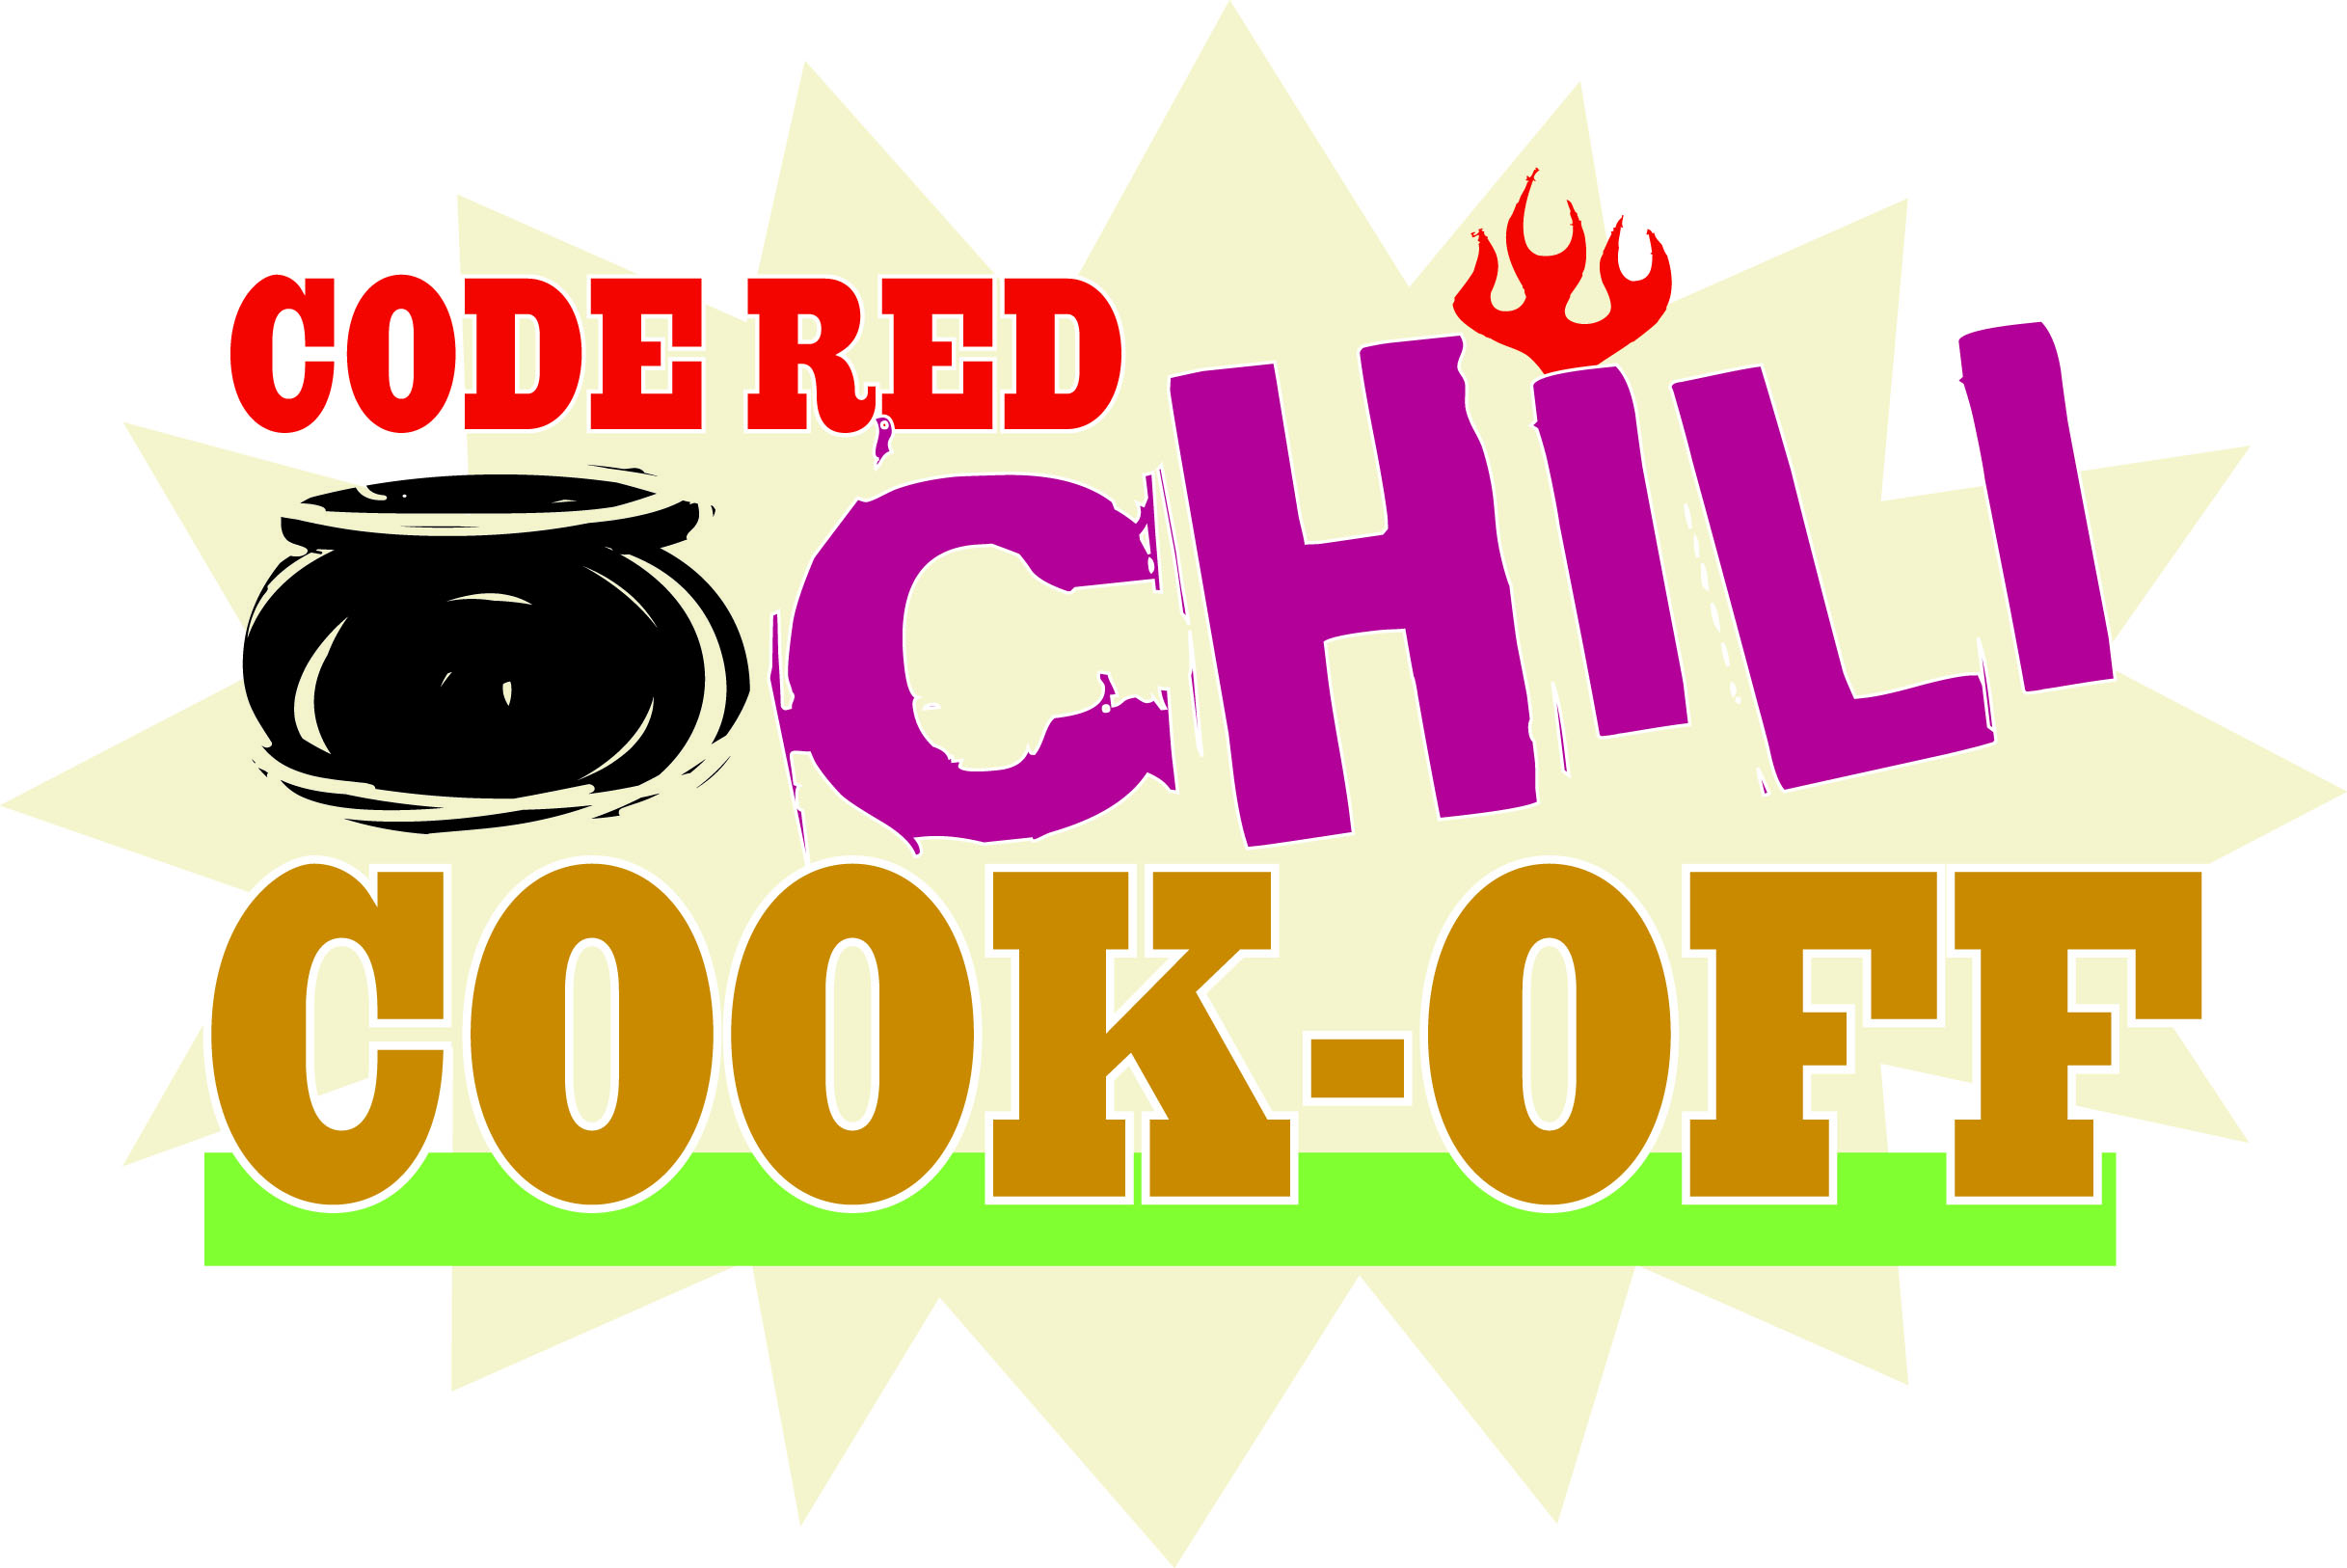 Join us for the 5th Annual Code Red Chili Cook-Off